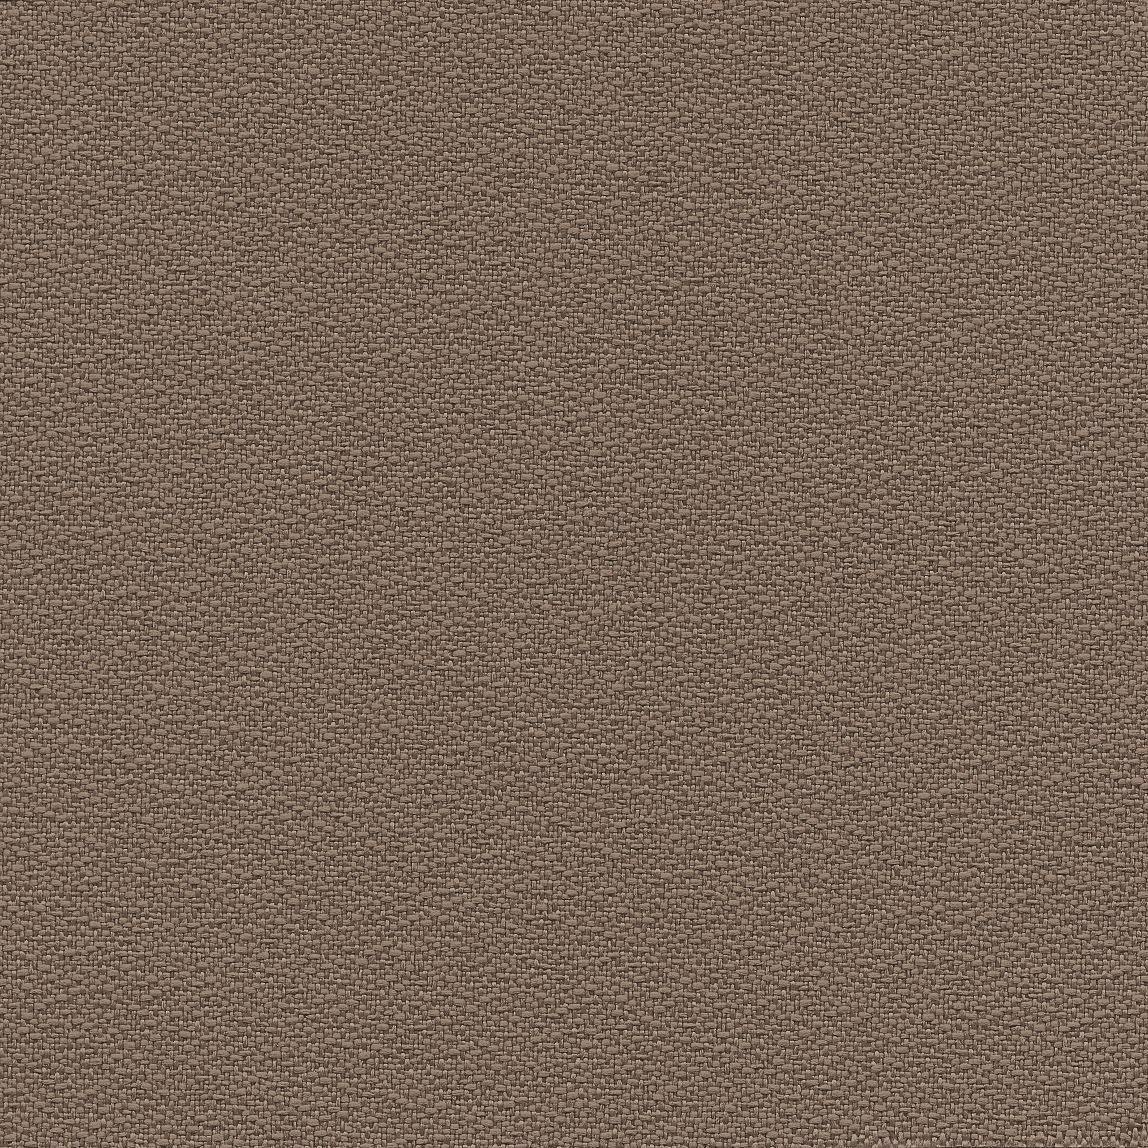 Centurion Panel Bark Swatch